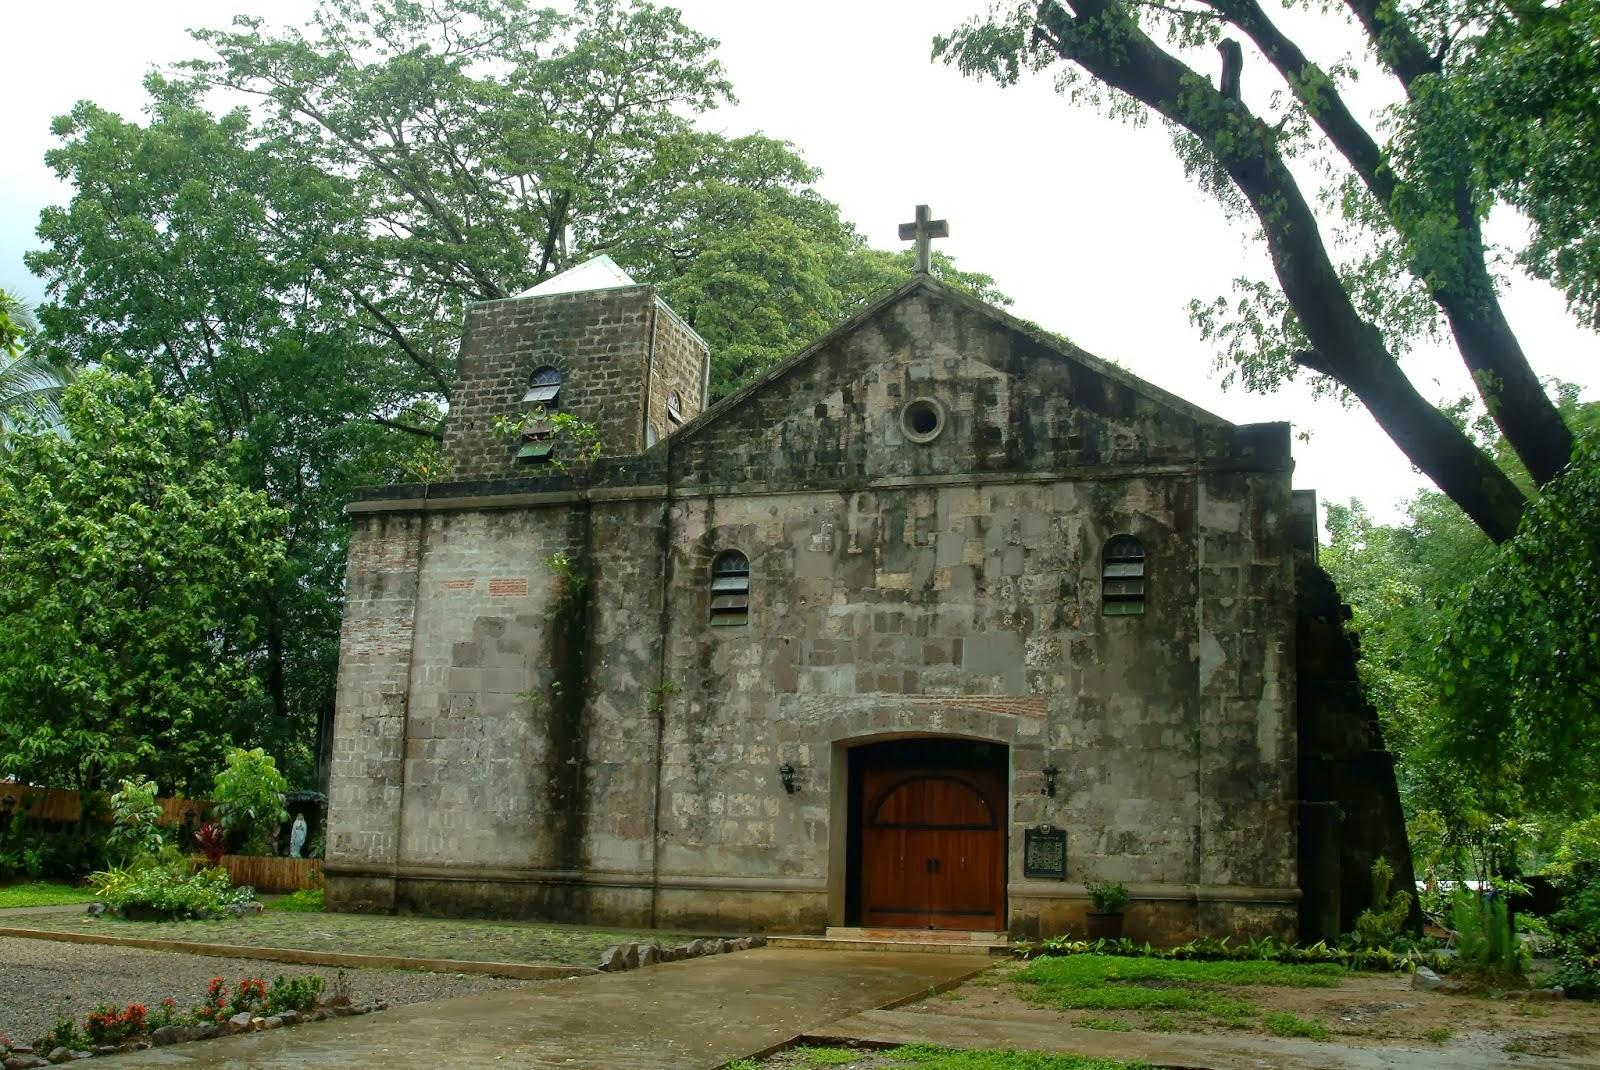 Boso boso church